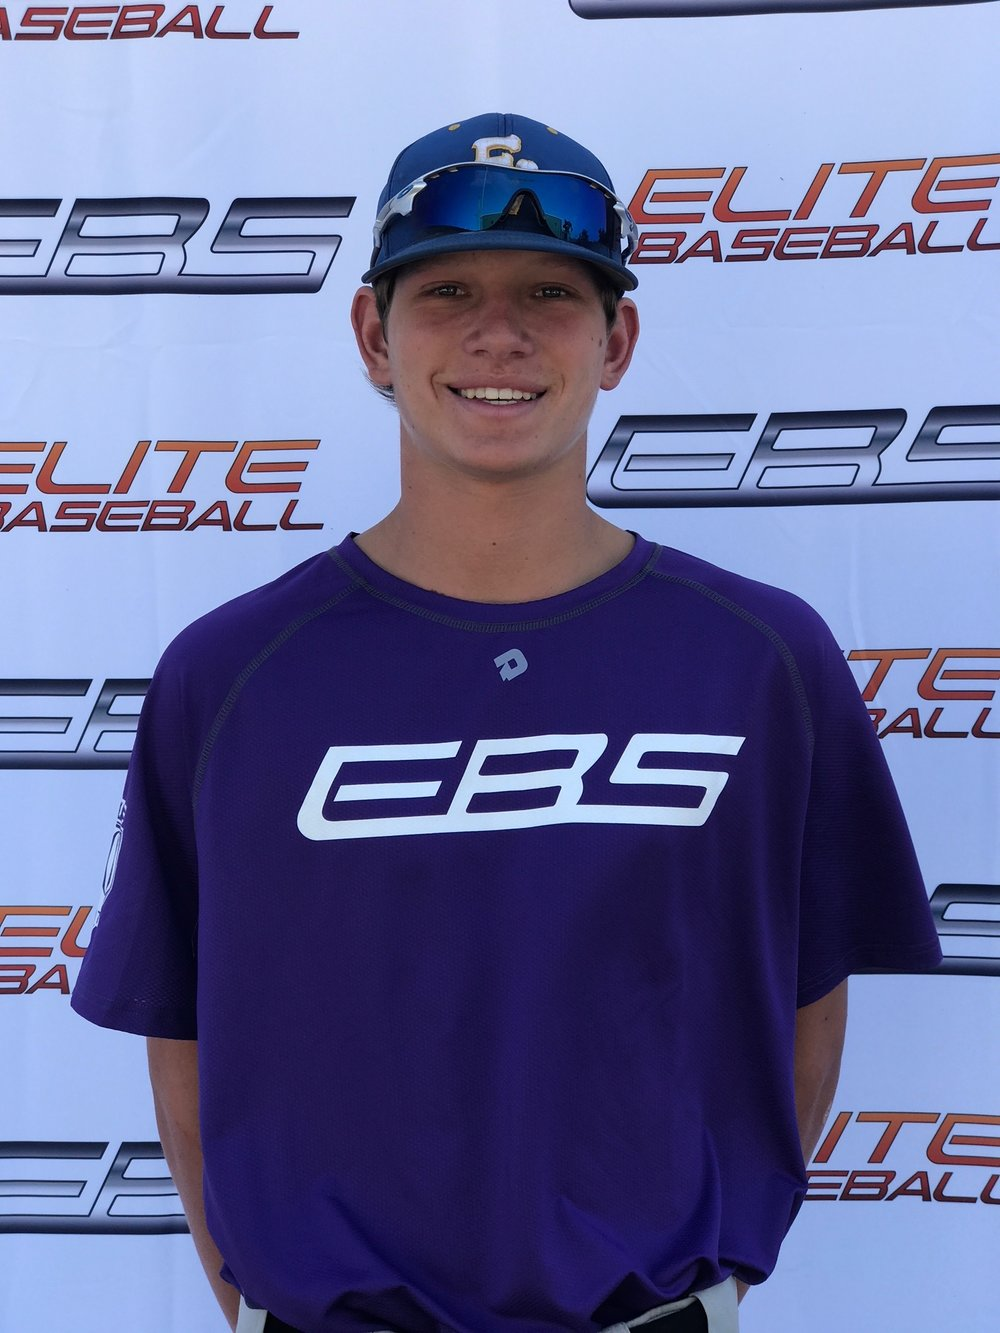 Jake brooks | 2020 | fountain valley | Irvine rox | UCLA